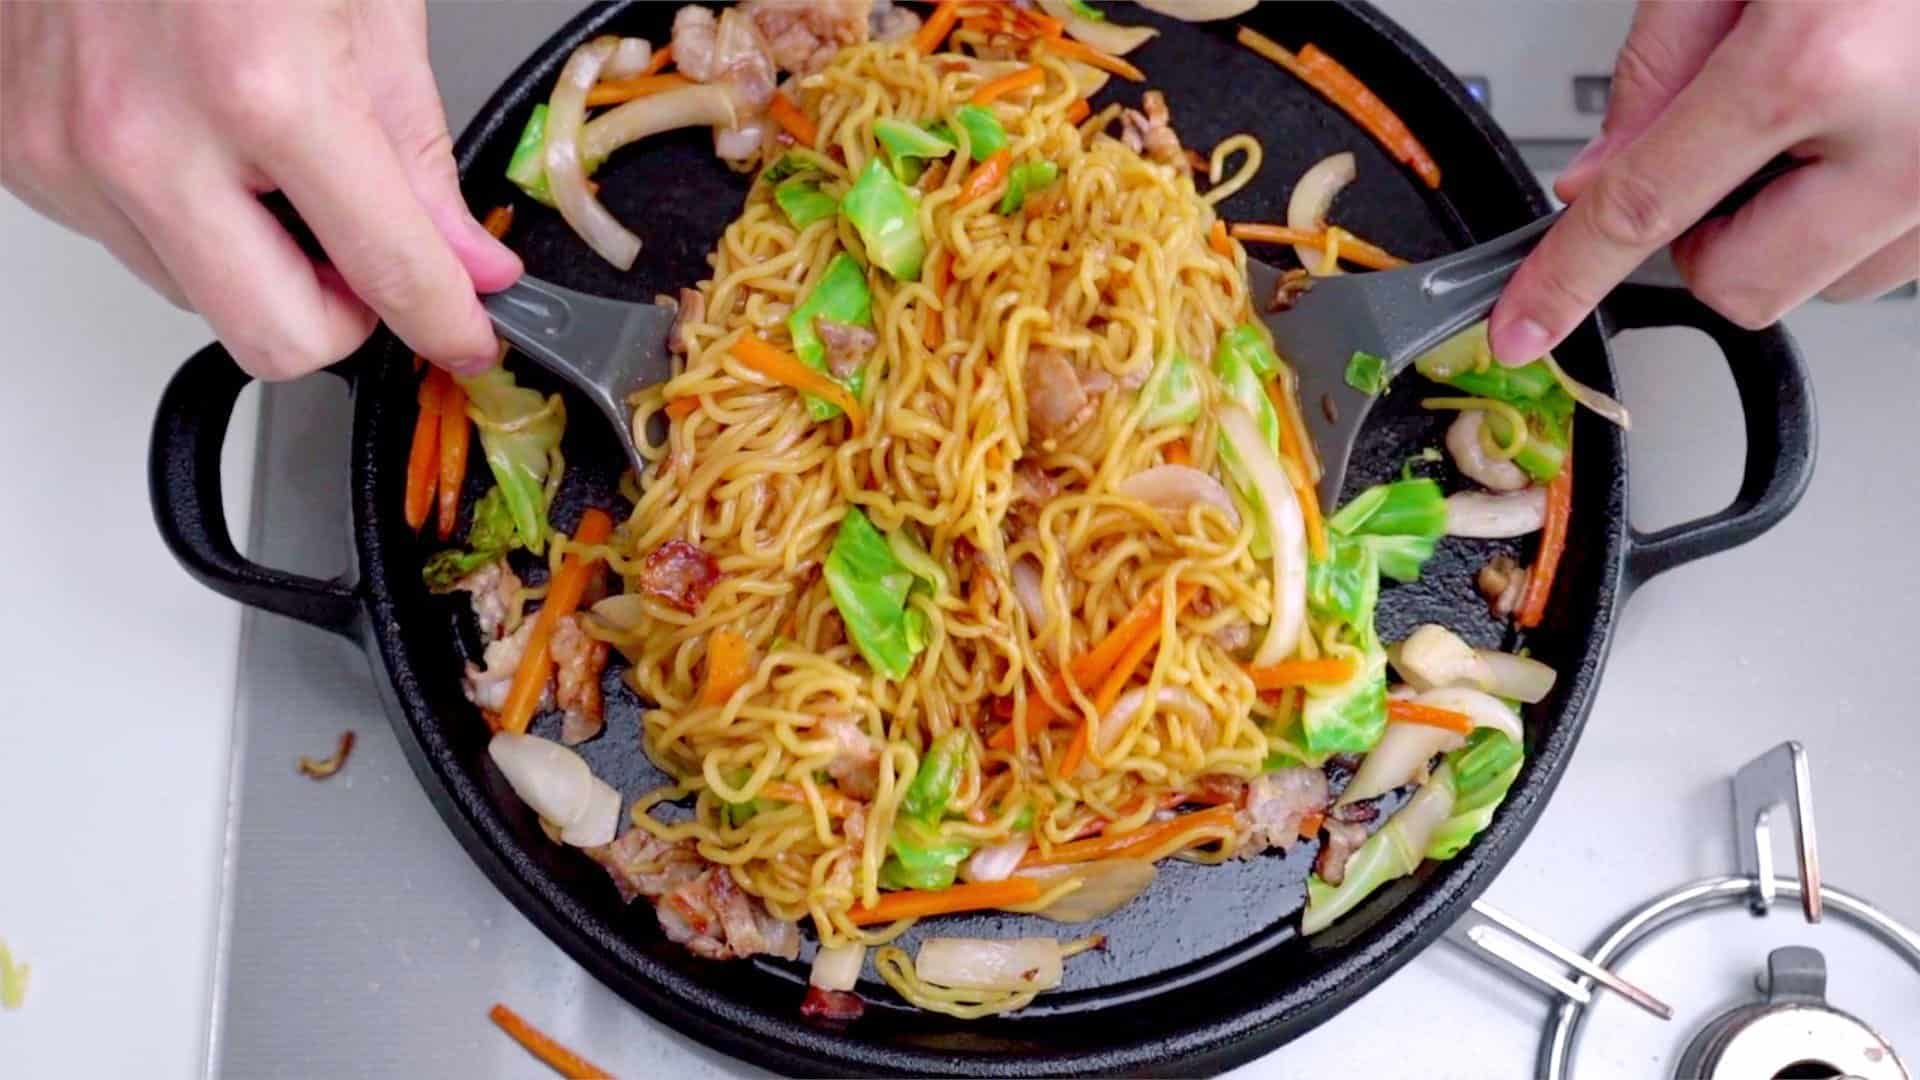 Add the yakisoba sauce and toss to coat evenly and caramelize.